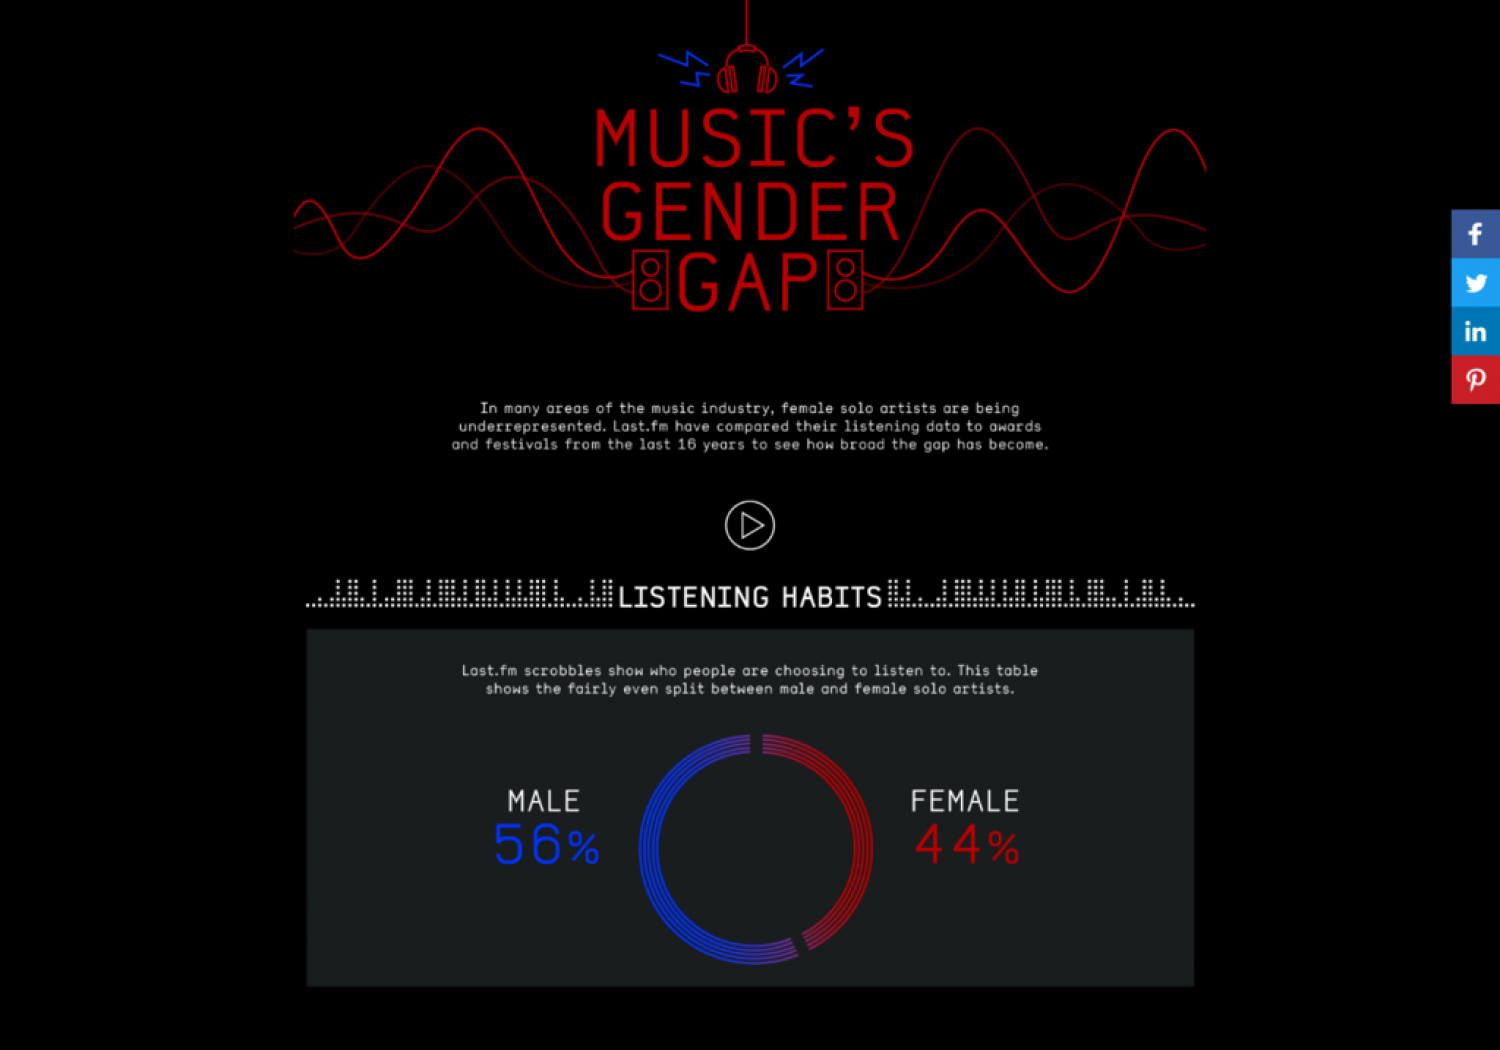 Music's Gender Gap Infographic